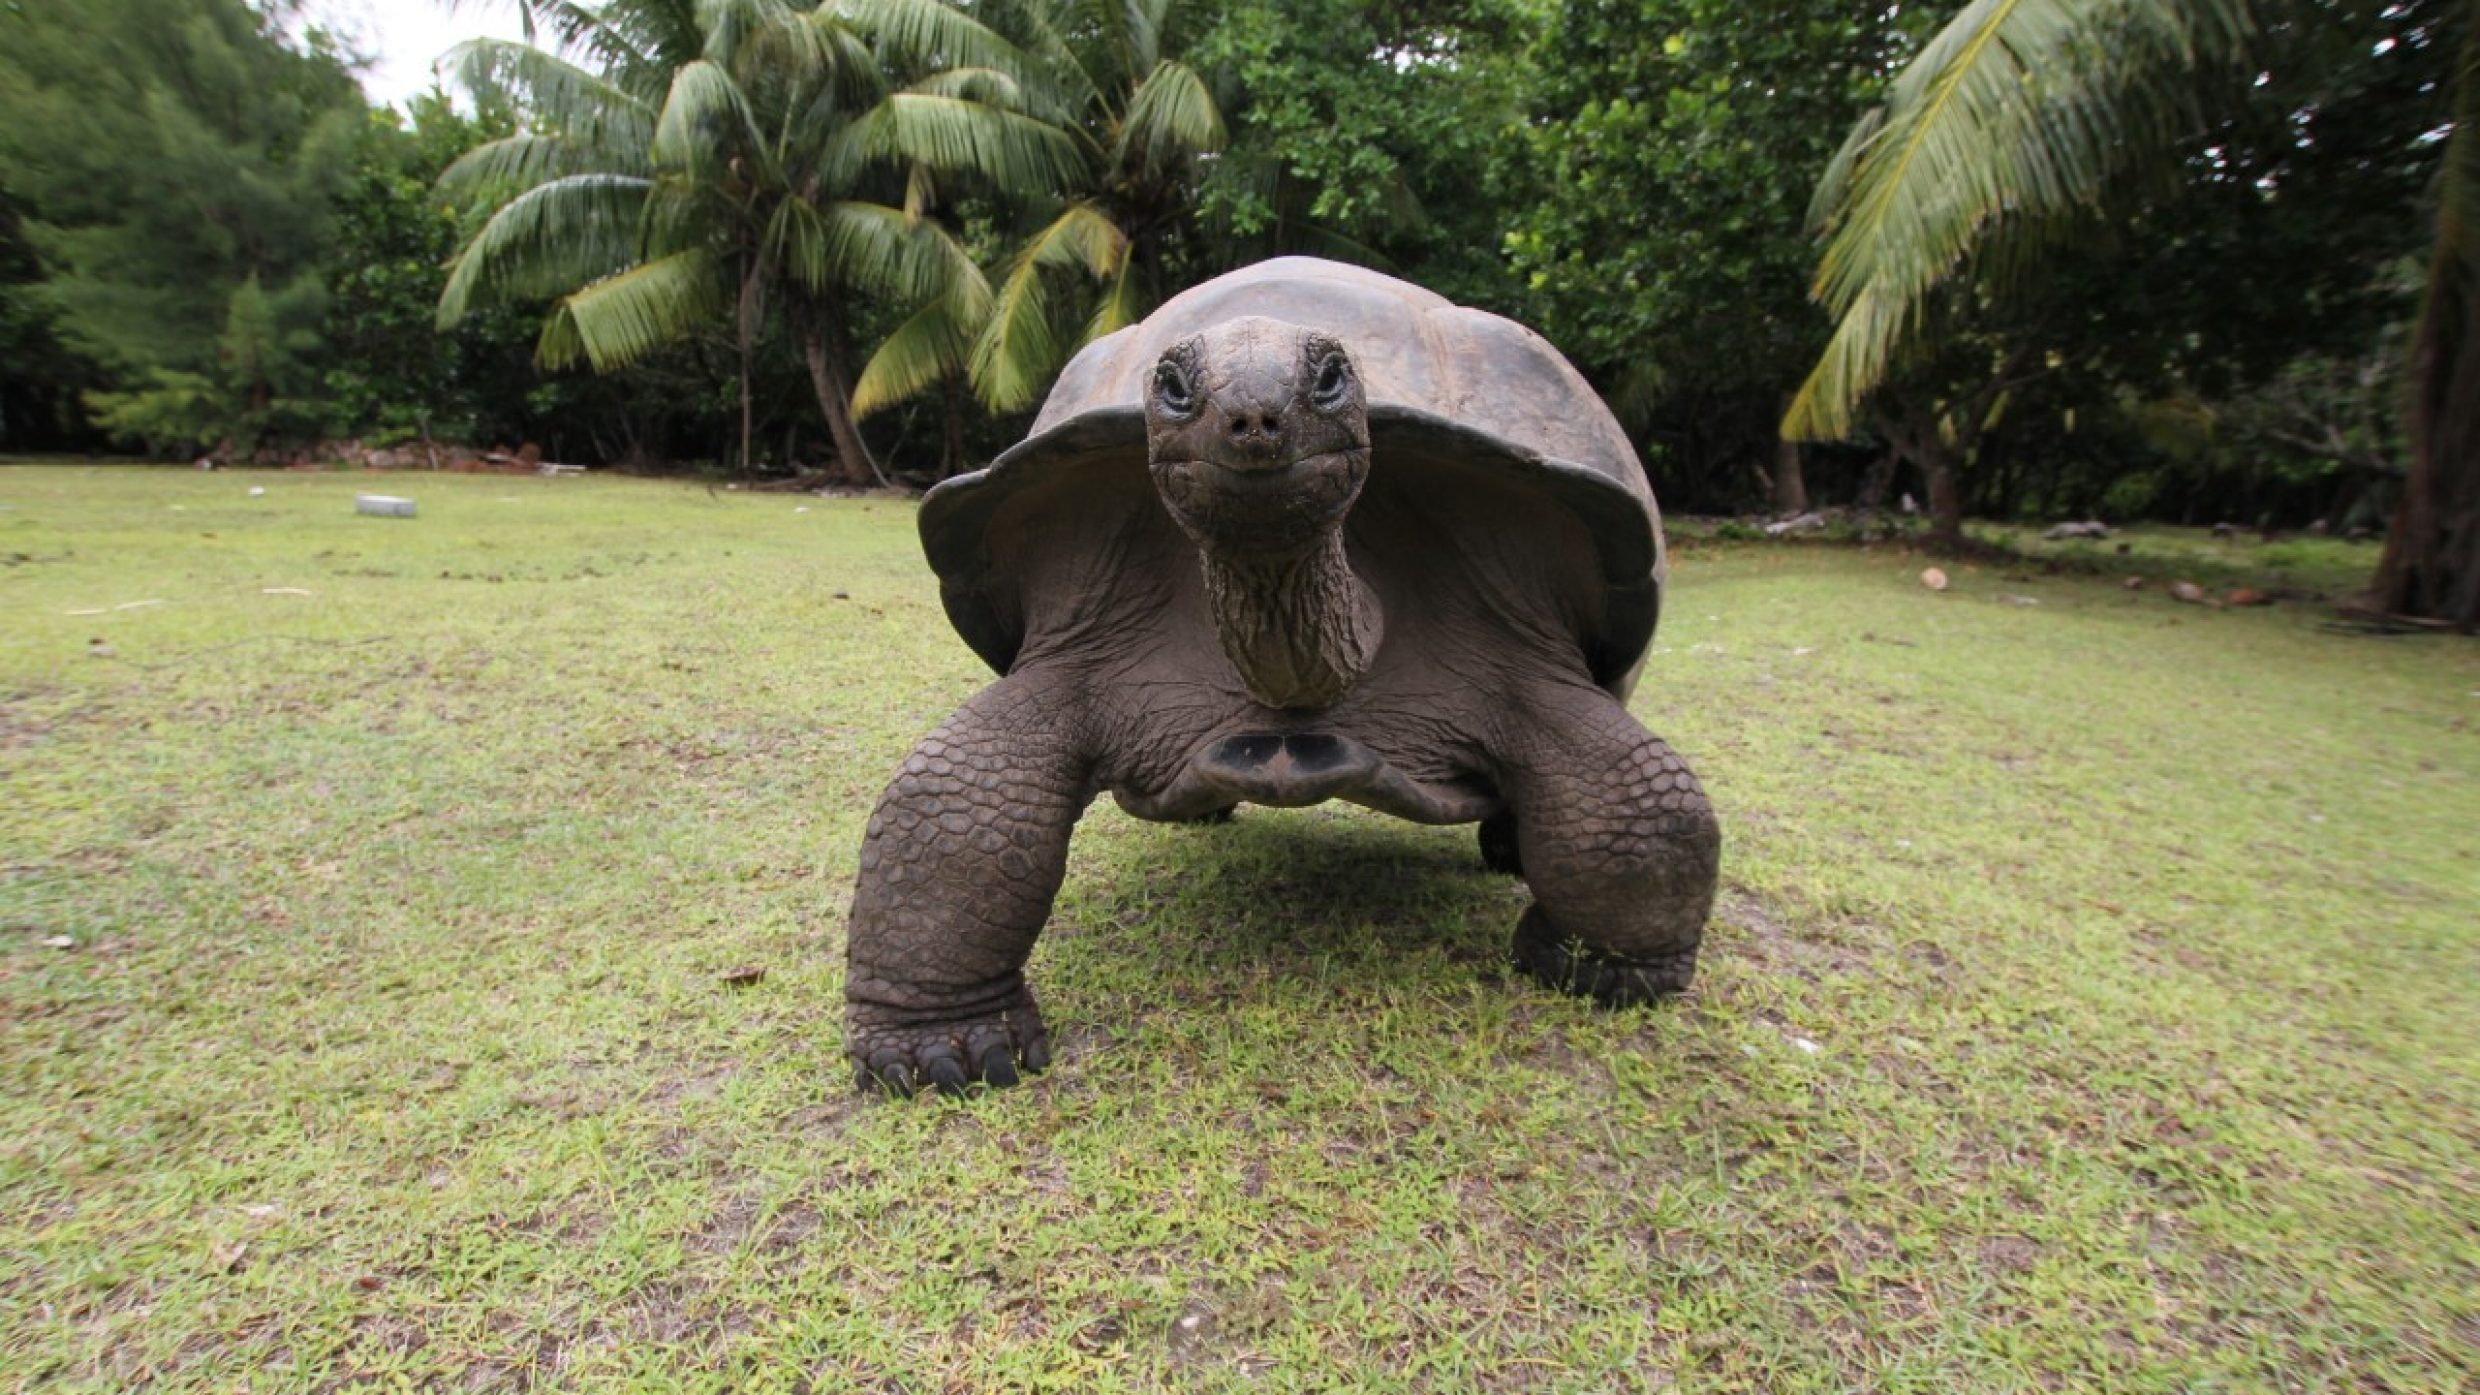 The oldest reptiles have hardly any natural predators due to their sturdy shell and they are very adaptable, even surviving the ice age. One Aldabra giant tortoise even lived to a ripe old 256.